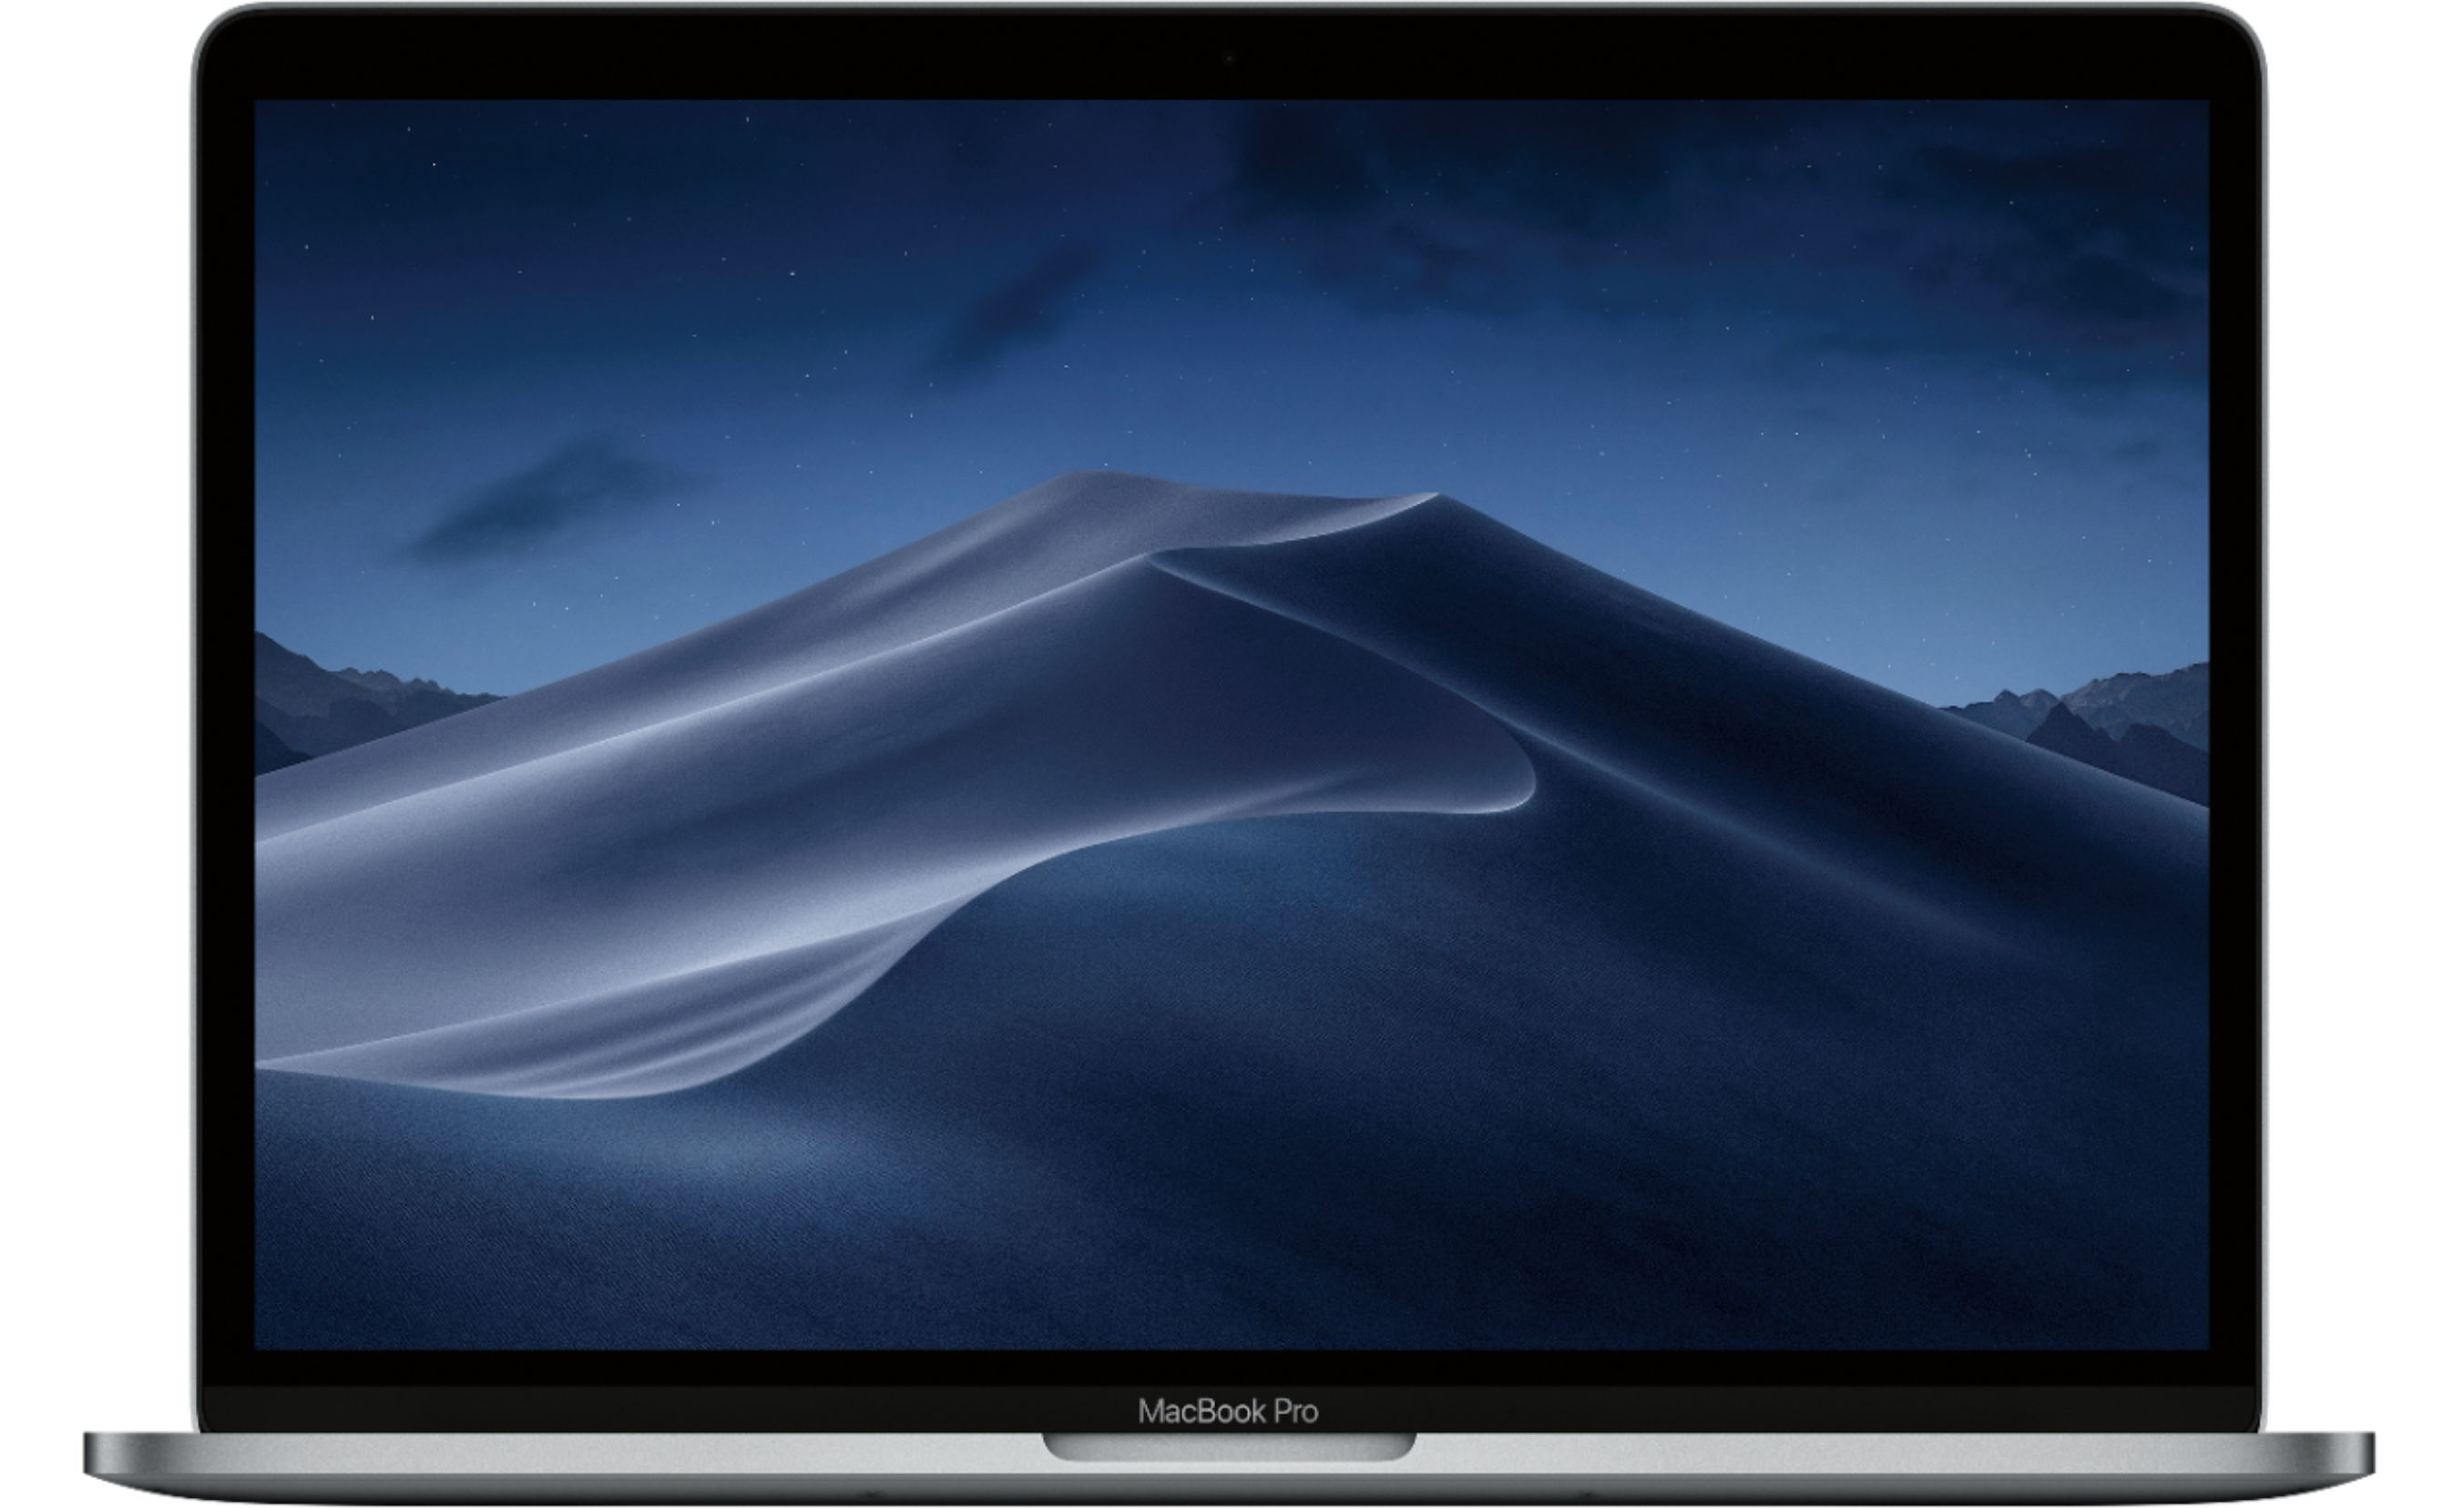 """Front Zoom. Apple - MacBook Pro 15.4"""" Display with Touch Bar - Intel Core i9 - 32GB Memory - AMD Radeon Pro 555X - 1TB SSD - Space Gray."""